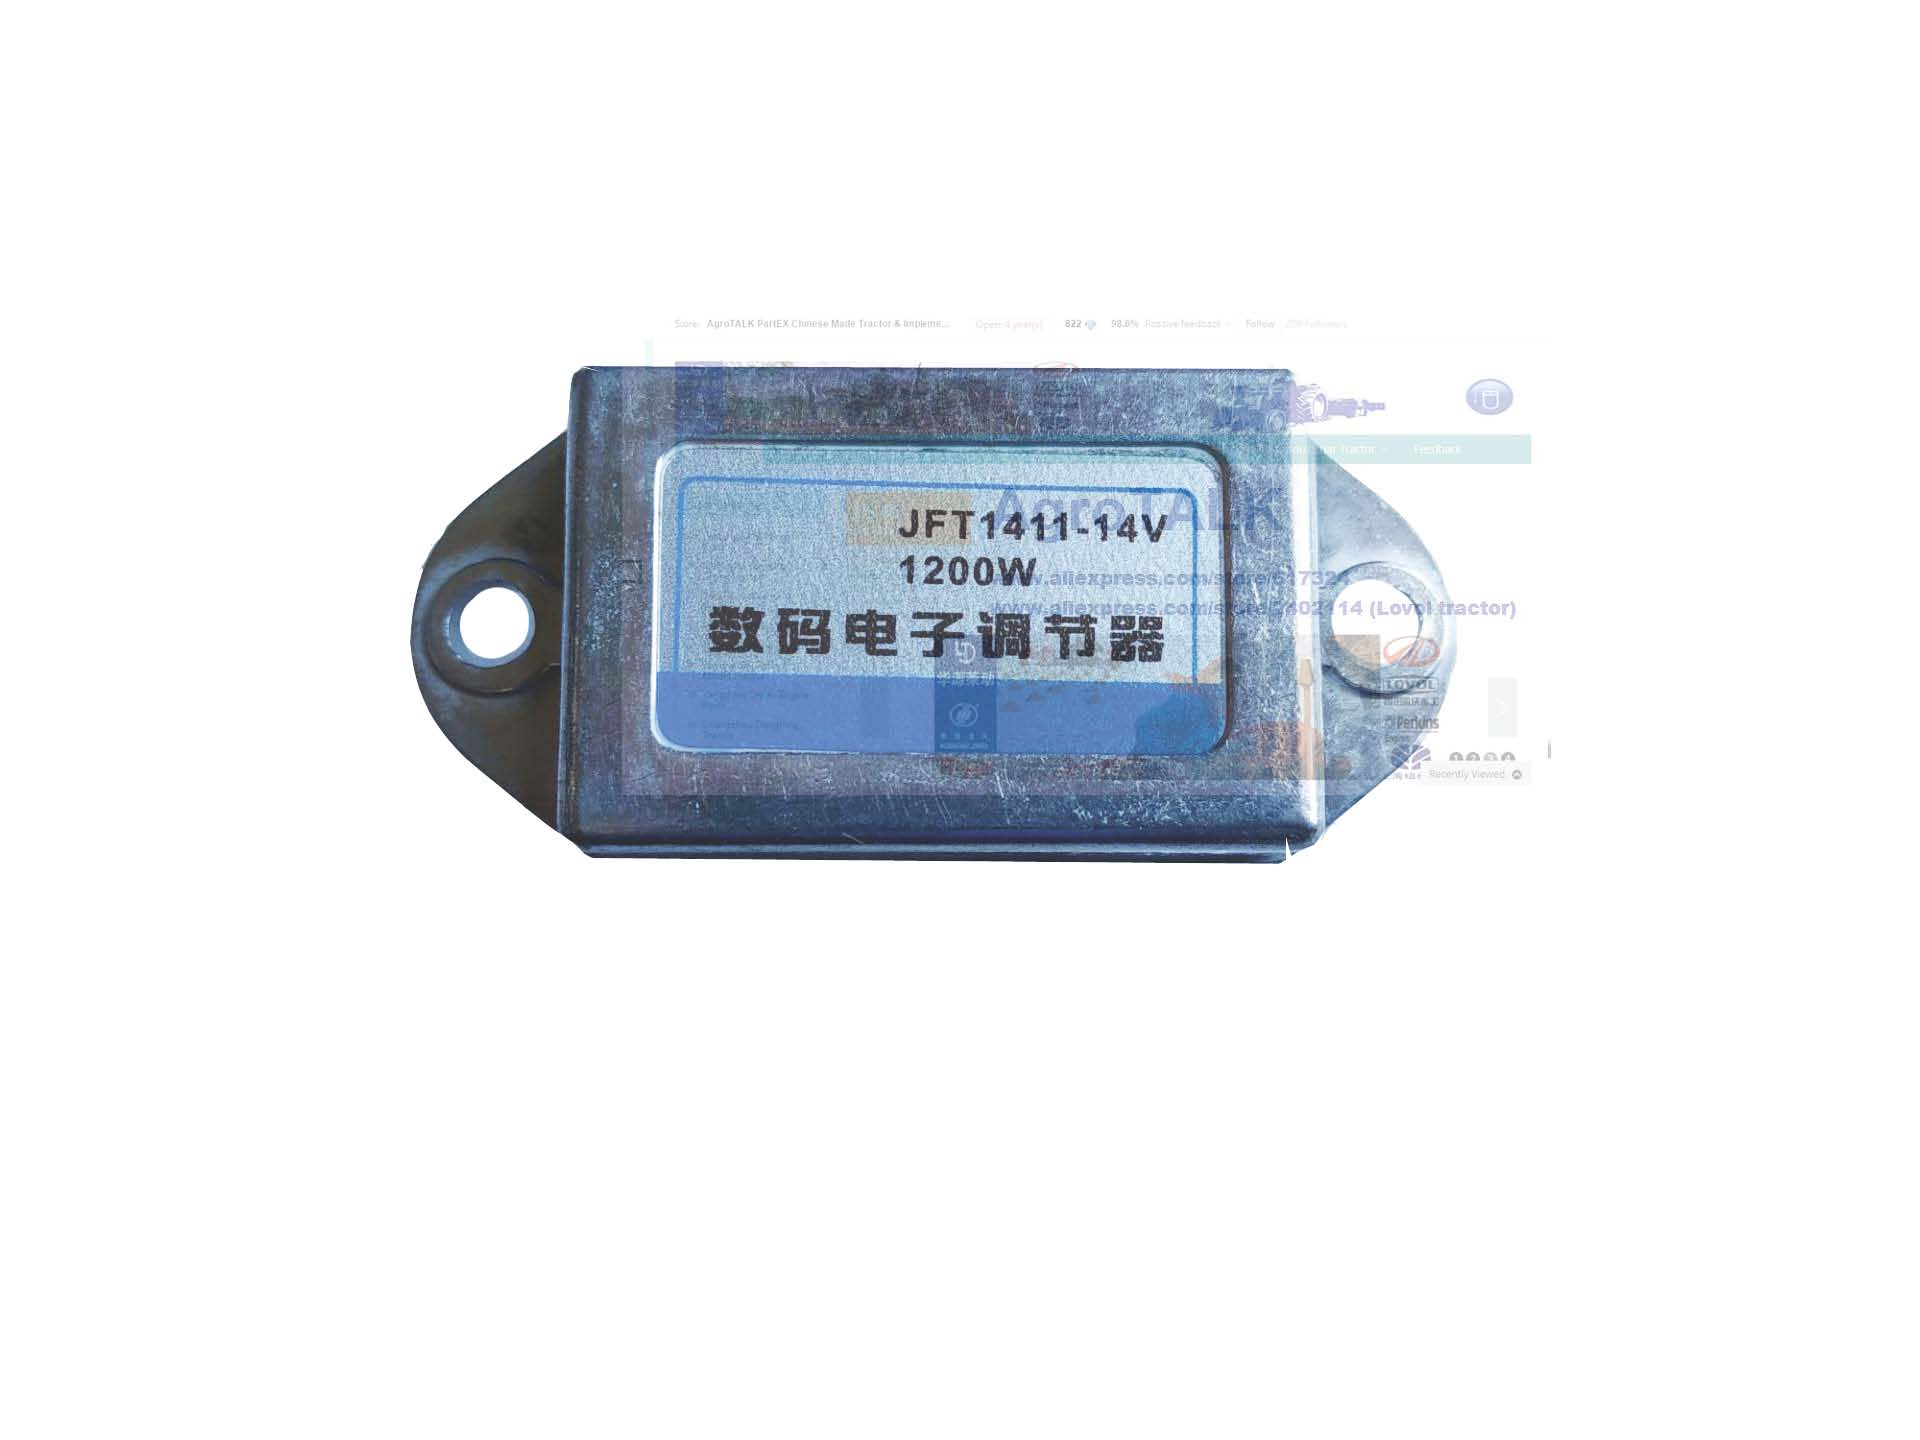 JINMA 254 284 Tractor Parts, The Regulator, Part Number: JFT1411-14V As Picture Showed (new Model)